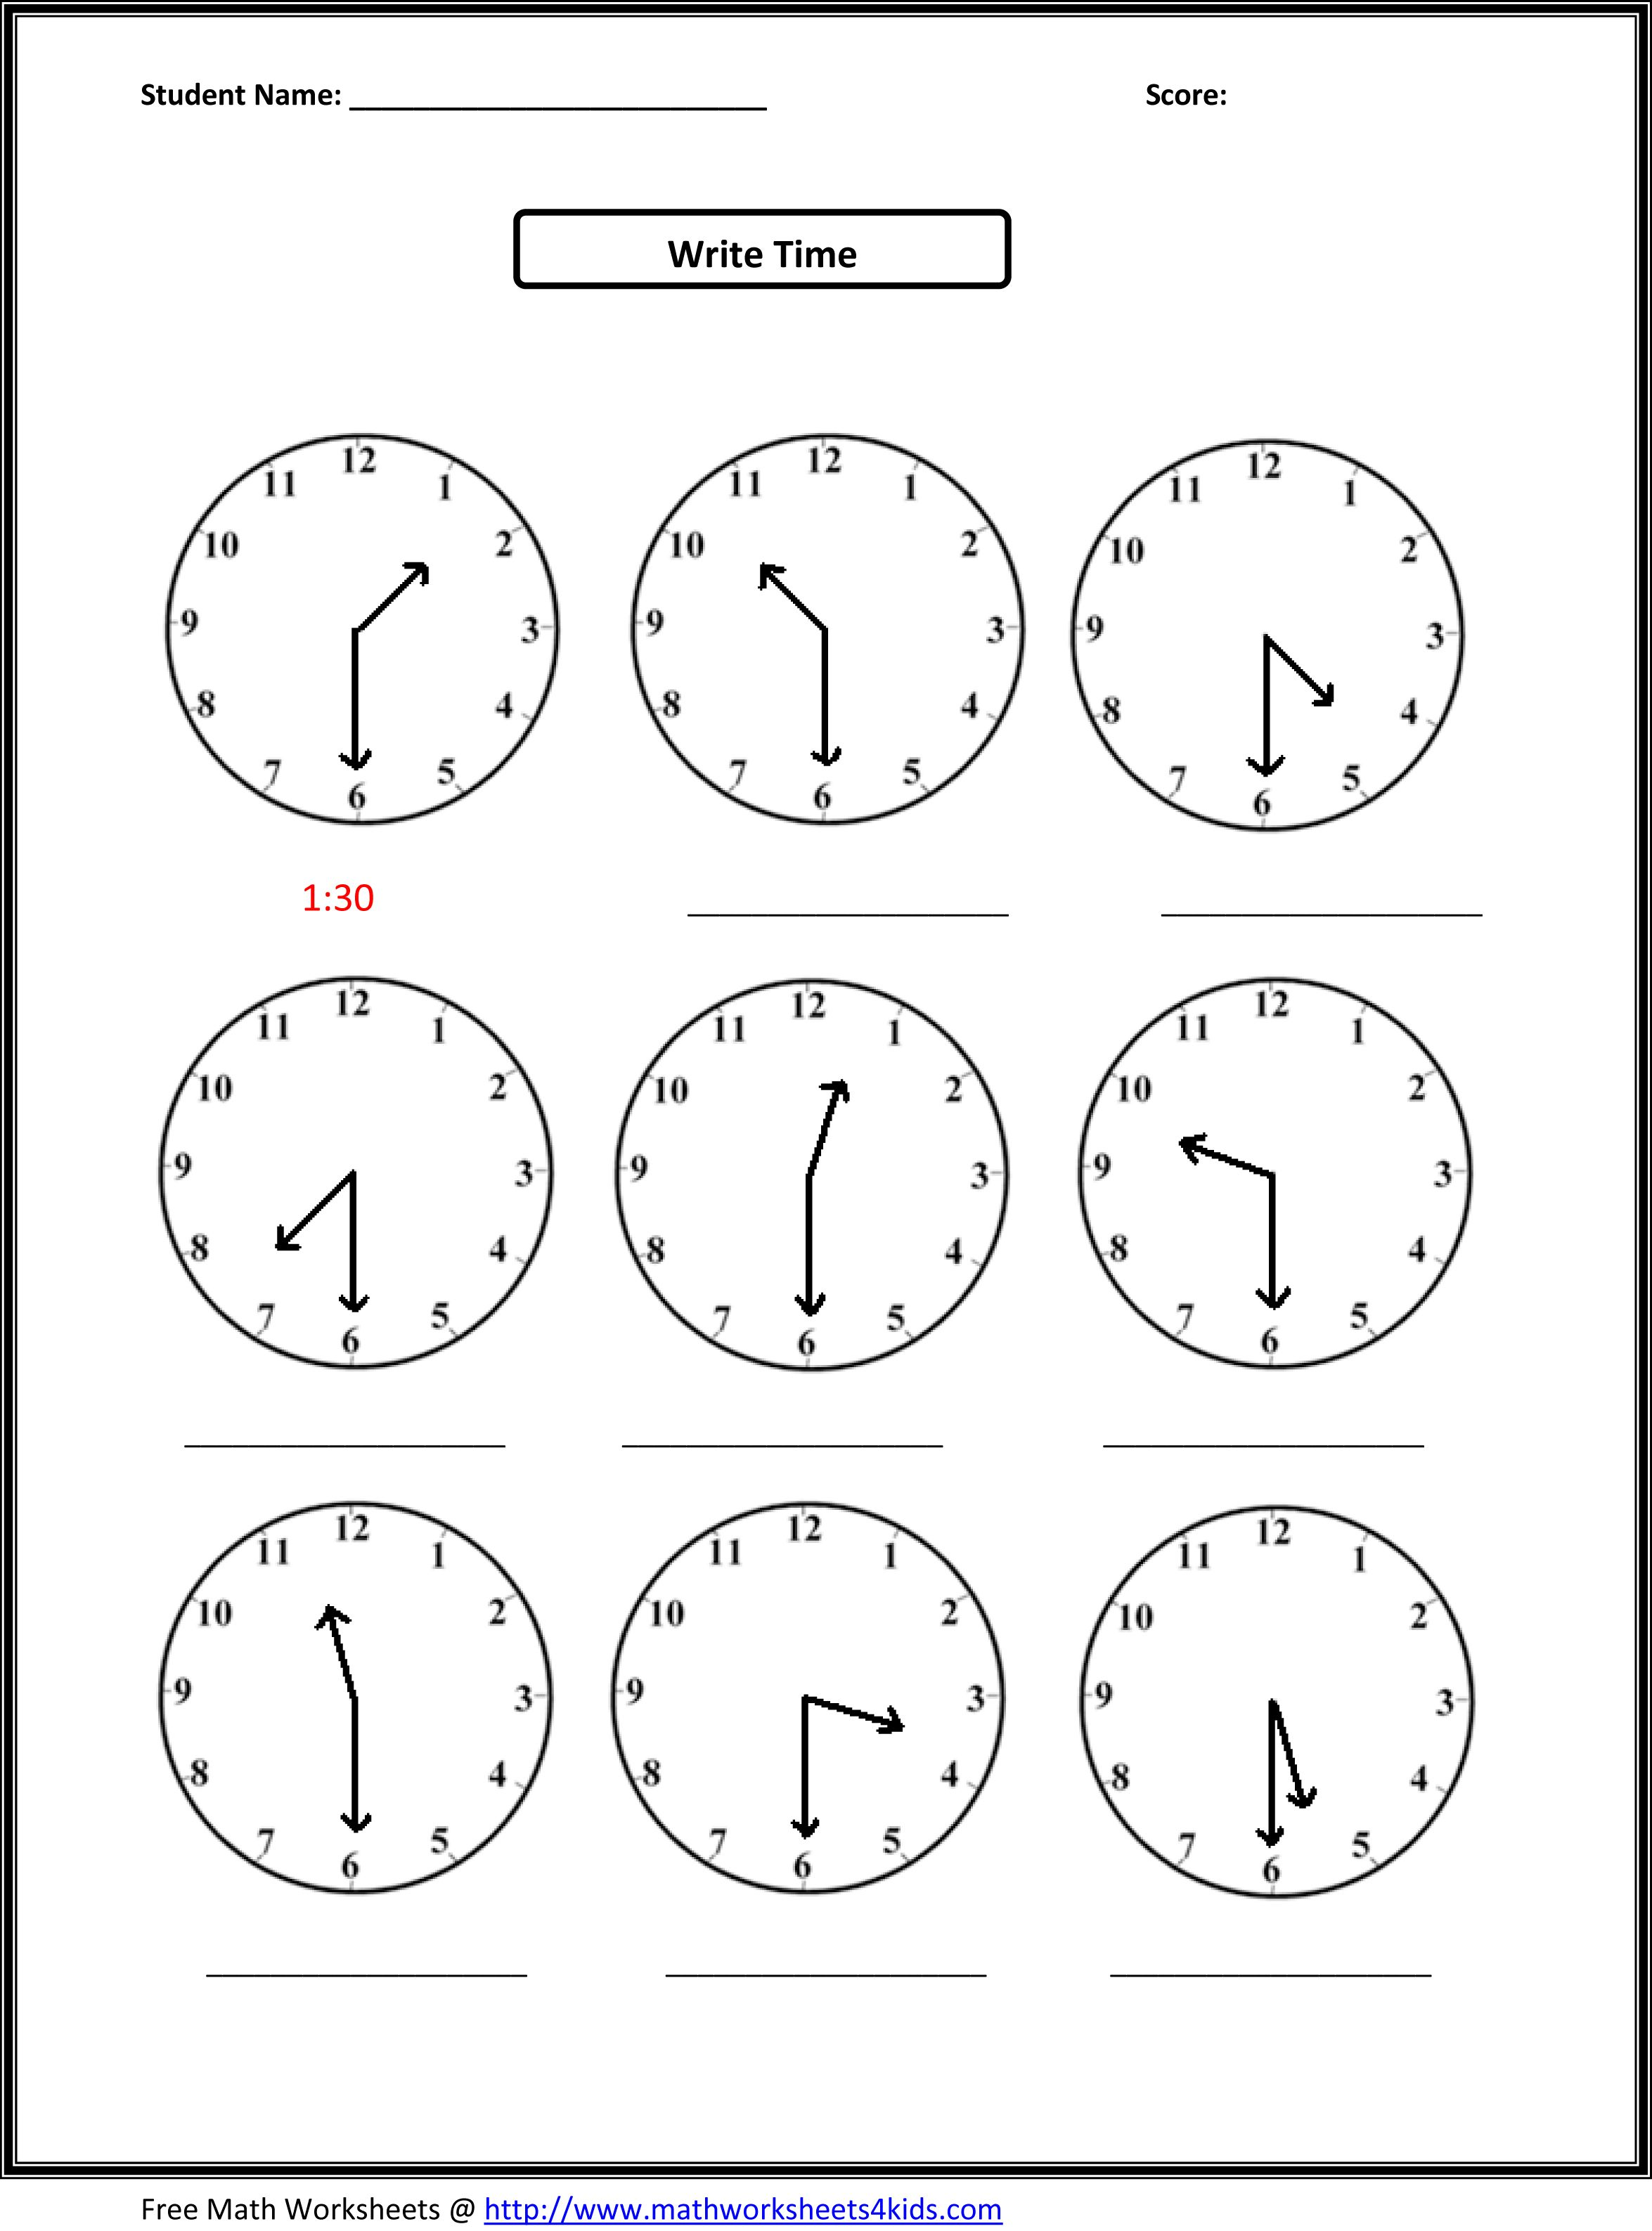 Proatmealus  Splendid Worksheet On Time For Grade   Reocurent With Likable Free Printable Telling Time Worksheets Nd Grade  Reocurent With Extraordinary Number  Worksheet Also Calculator Worksheets In Addition Rocks Worksheet And Fill In The Blanks Worksheets As Well As Adding And Subtracting Unlike Fractions Worksheets Additionally Ordinal Number Worksheets From Reocurentcom With Proatmealus  Likable Worksheet On Time For Grade   Reocurent With Extraordinary Free Printable Telling Time Worksheets Nd Grade  Reocurent And Splendid Number  Worksheet Also Calculator Worksheets In Addition Rocks Worksheet From Reocurentcom